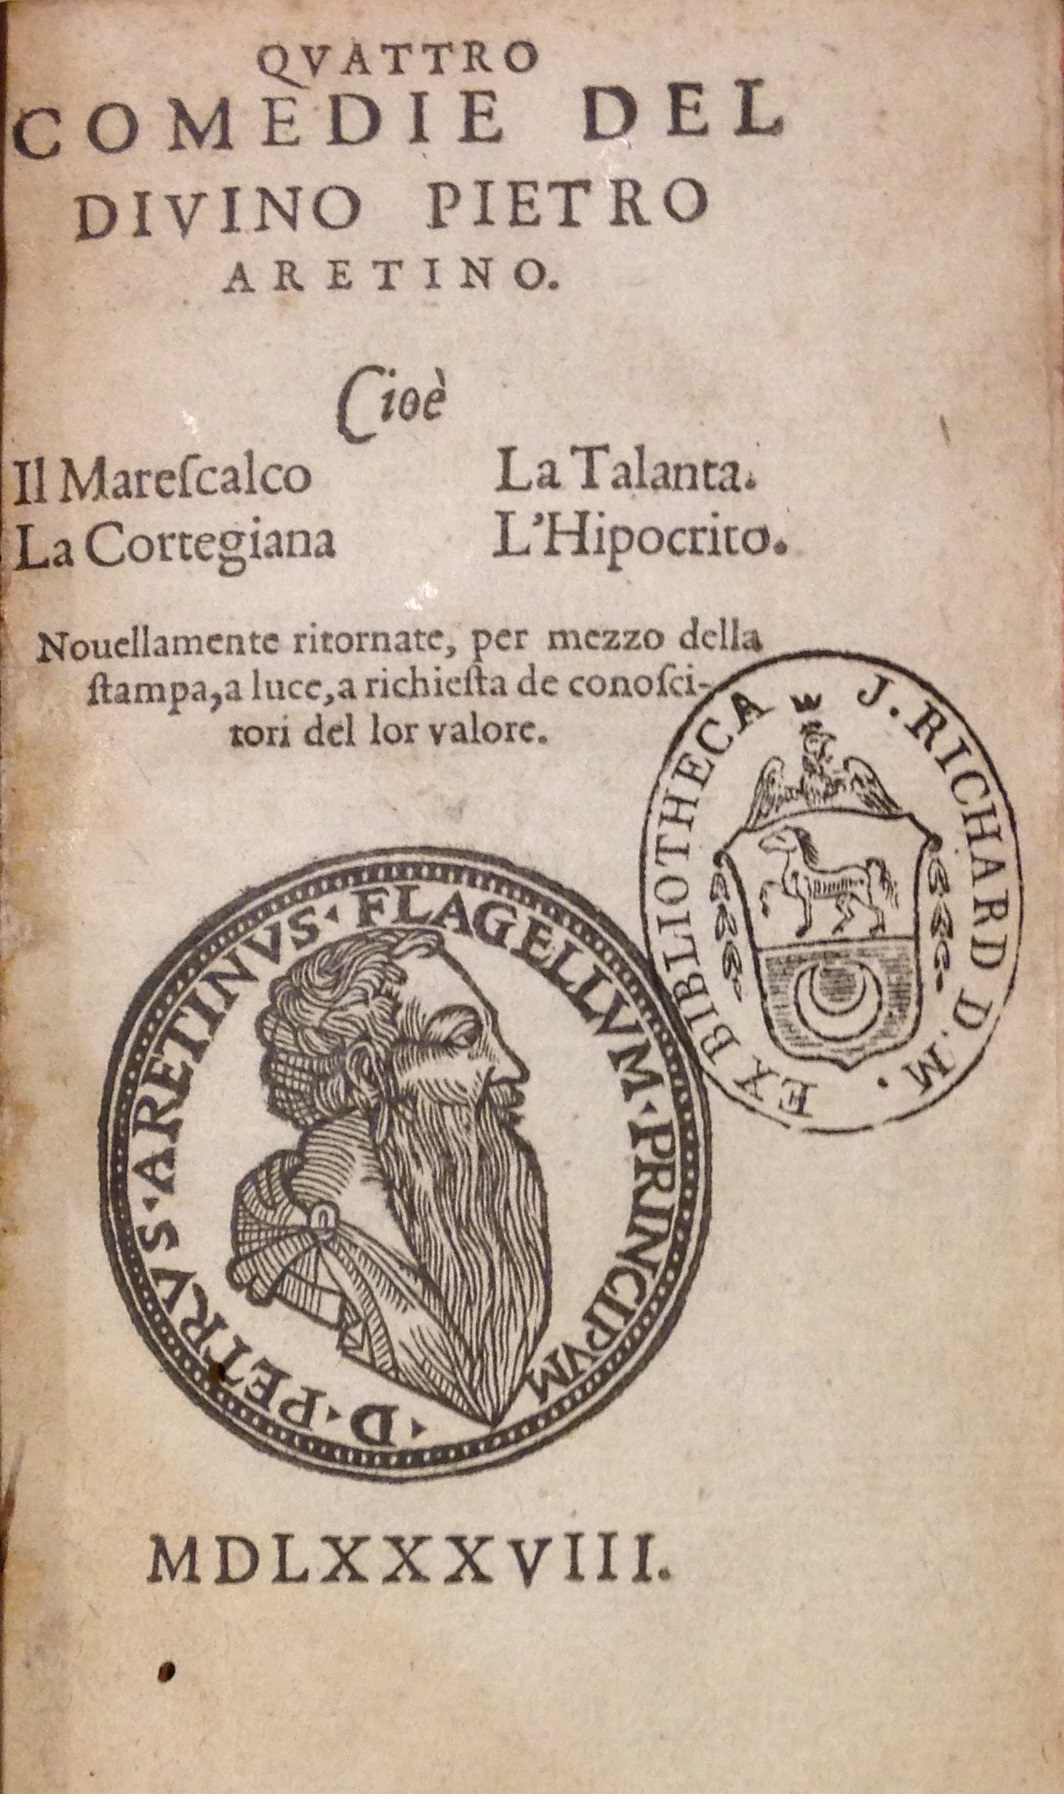 The truth is in the type: this imprintless 1588 edition of Petro Aretino's Quattro comedie was printed, not in Italy, but in London by the Elizabethan printer John Wolfe.     (PQ 4563 .A4 1588)